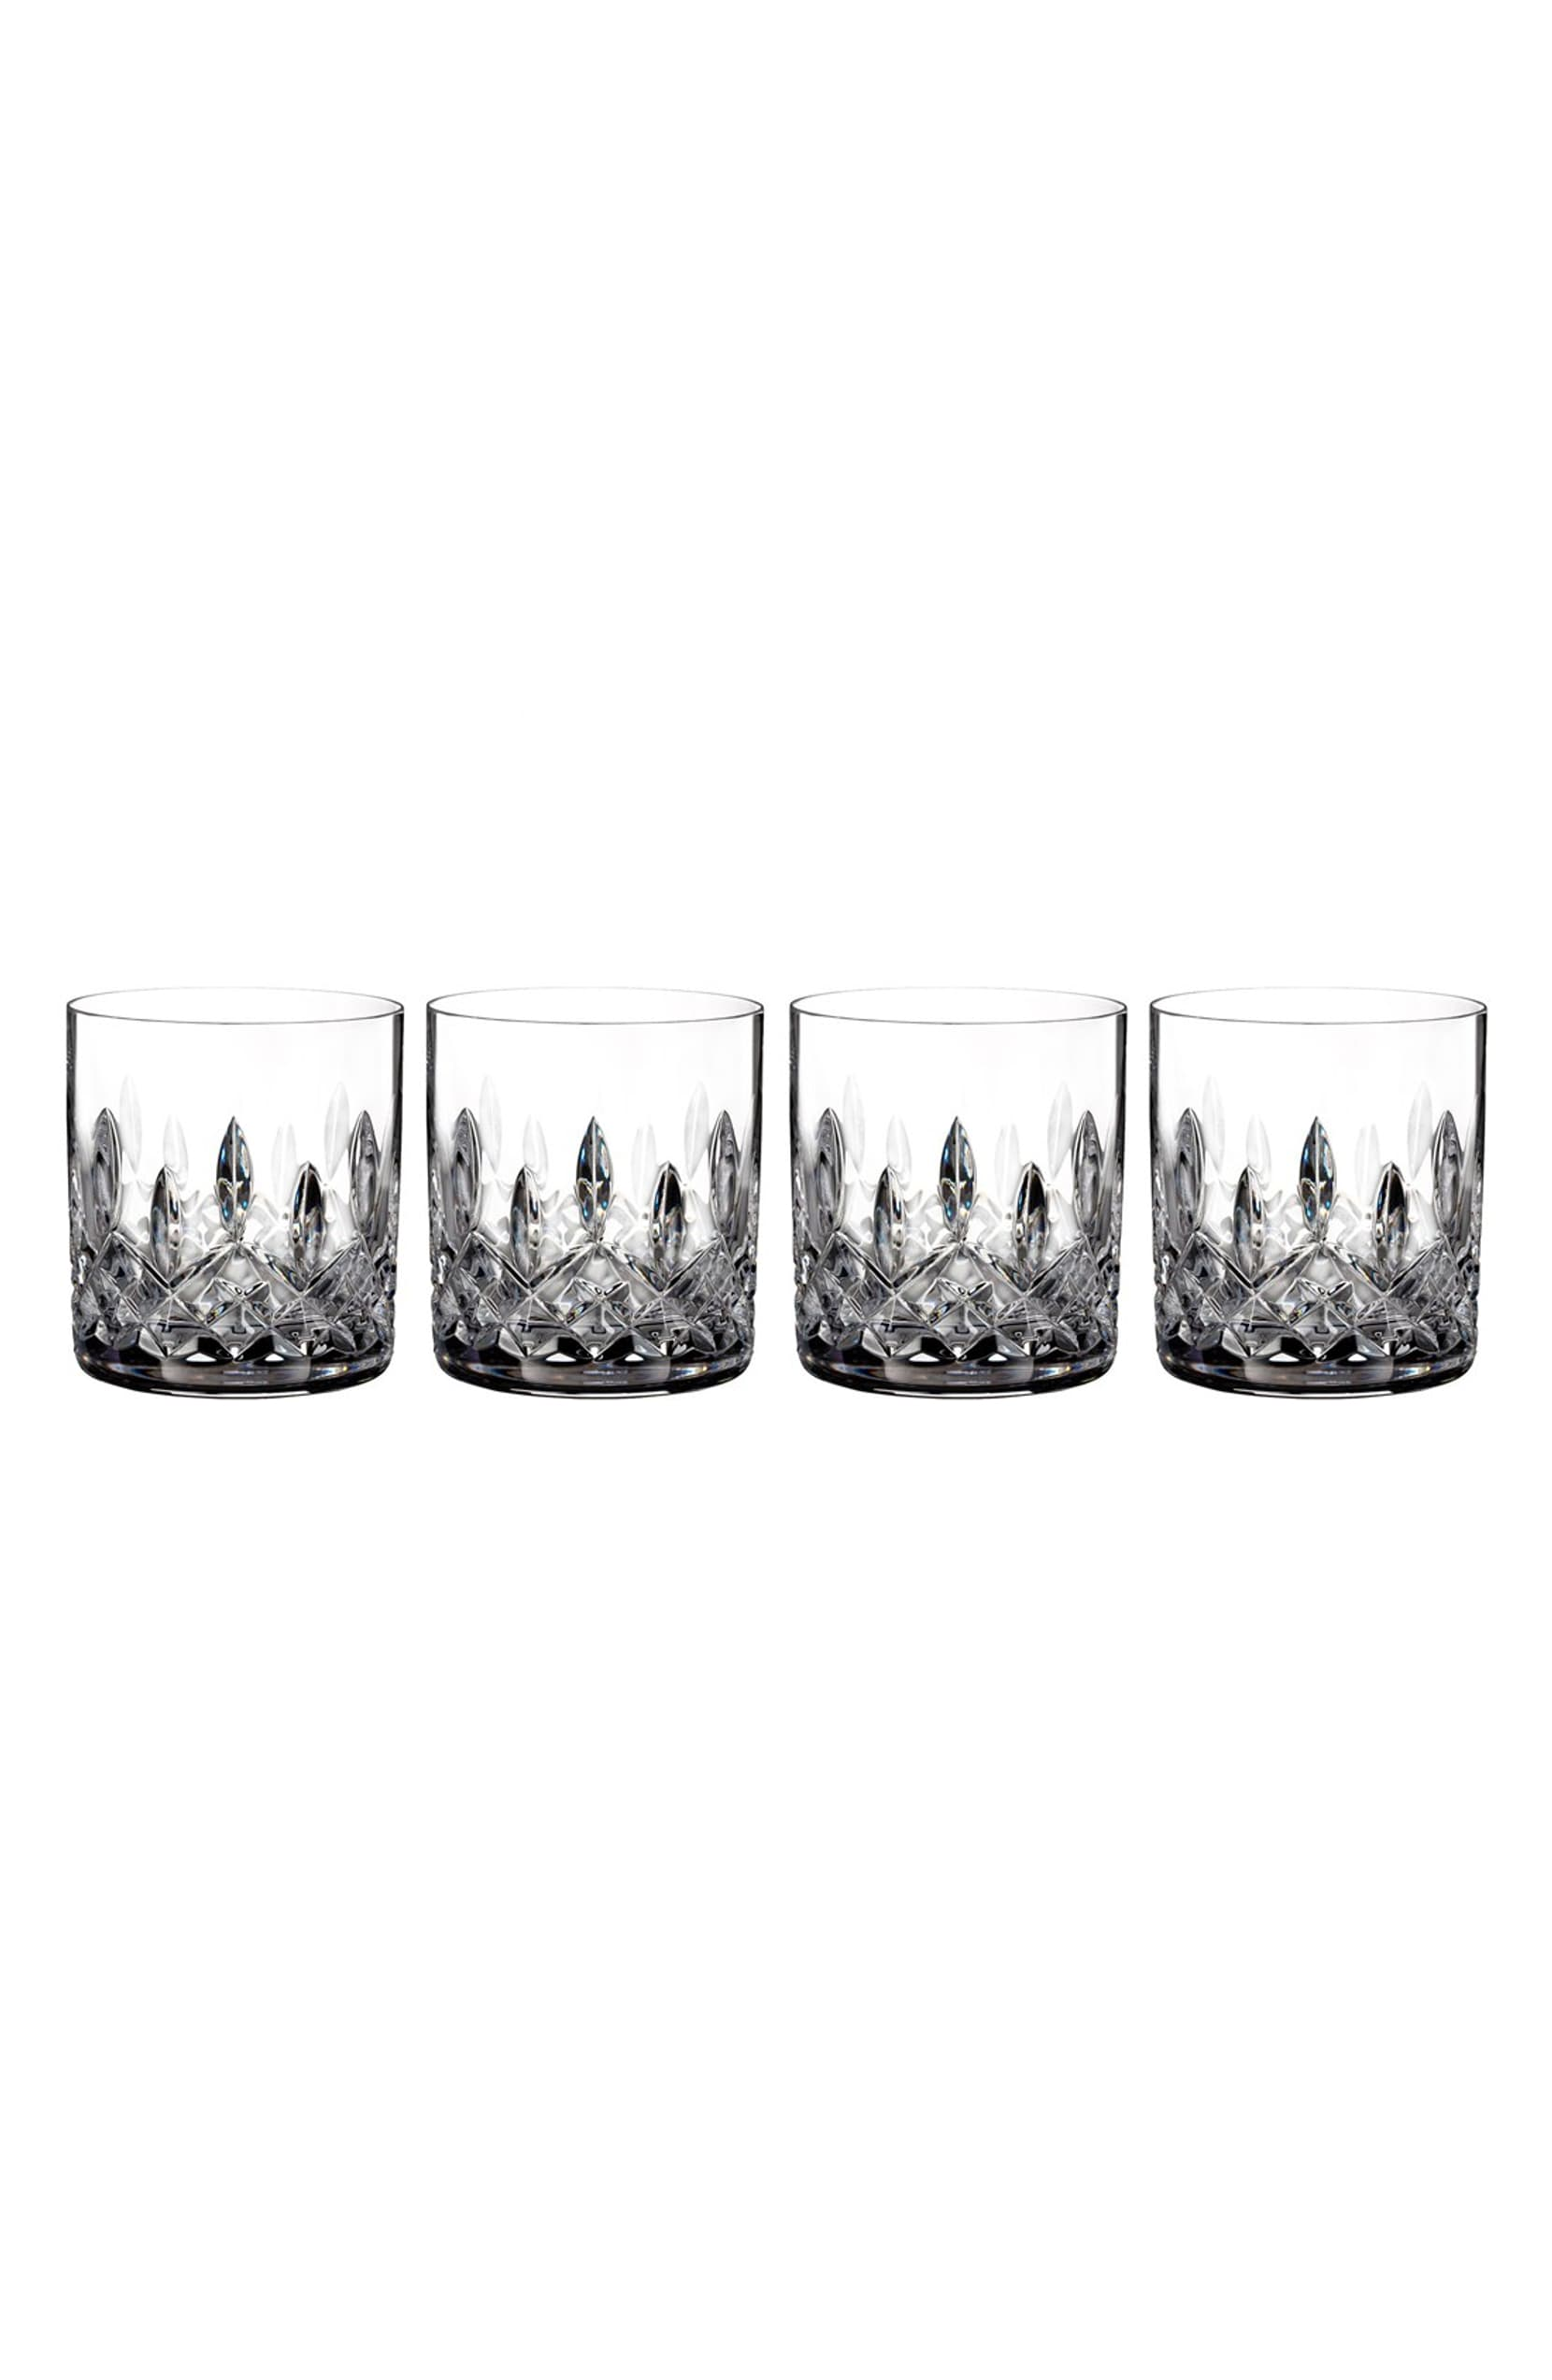 Waterford Lismore Crystal Straight-Sided Tumblers